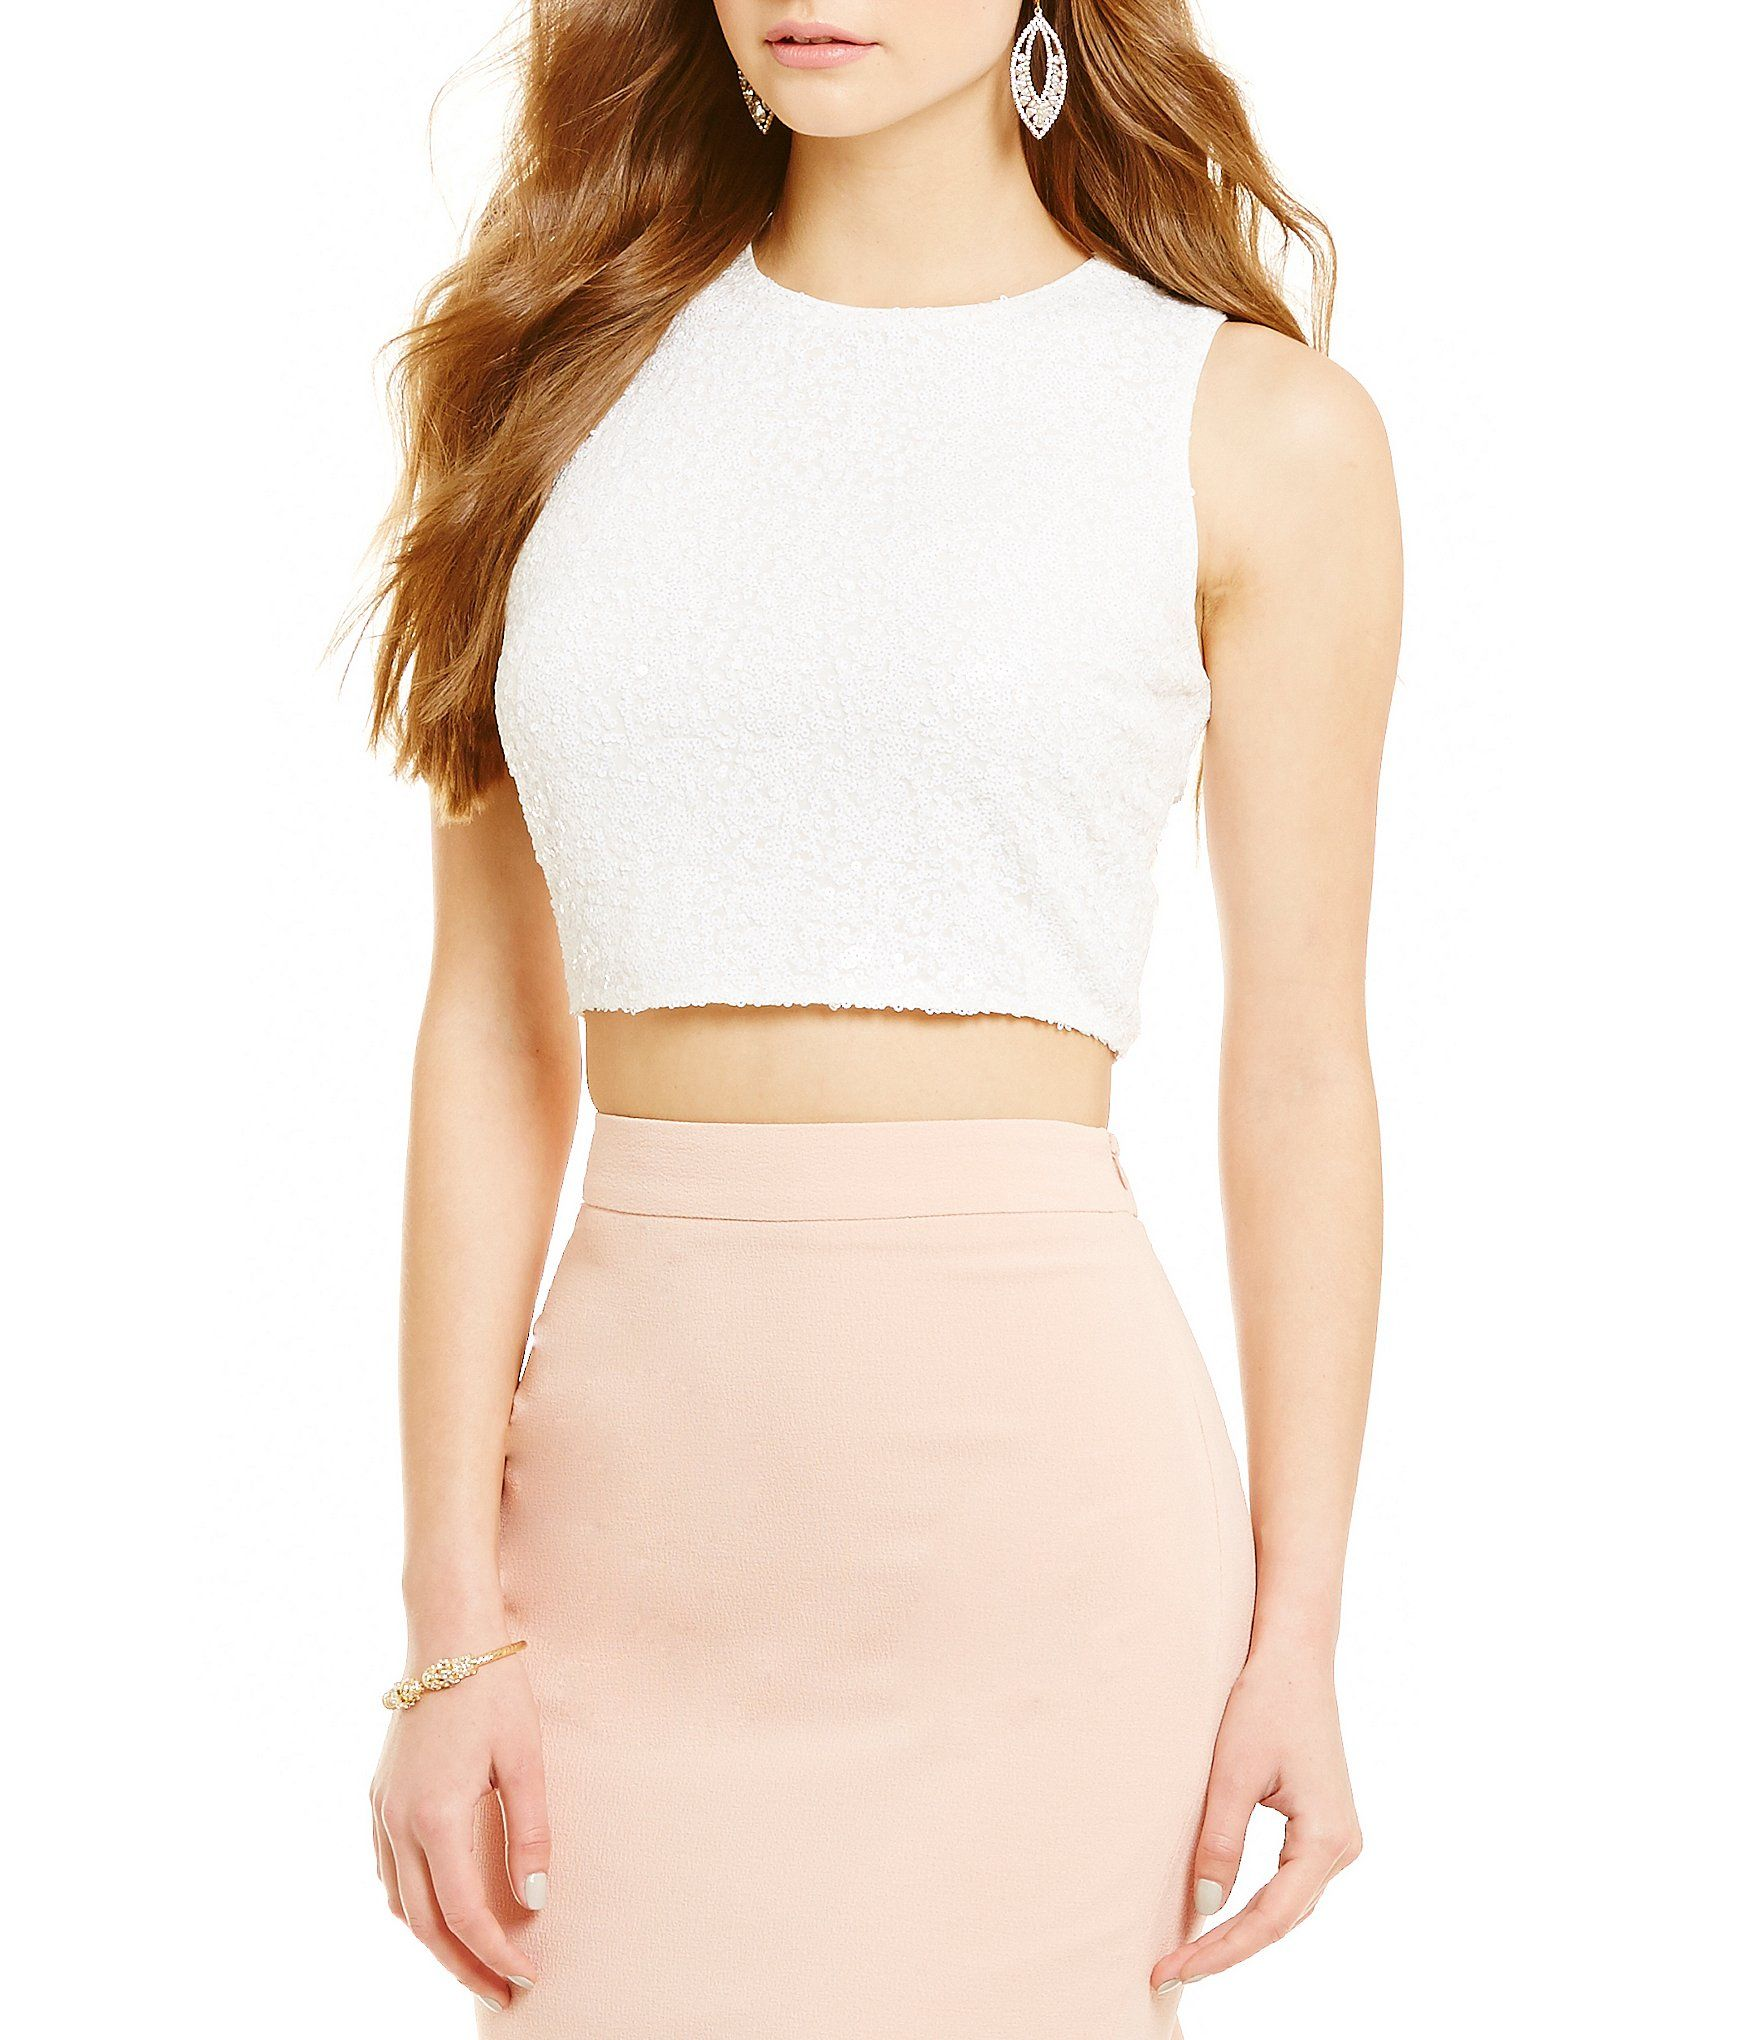 ce2795da432 Belle Badgley Mischka Nadine Zip Back Crop Top  Dillards ...